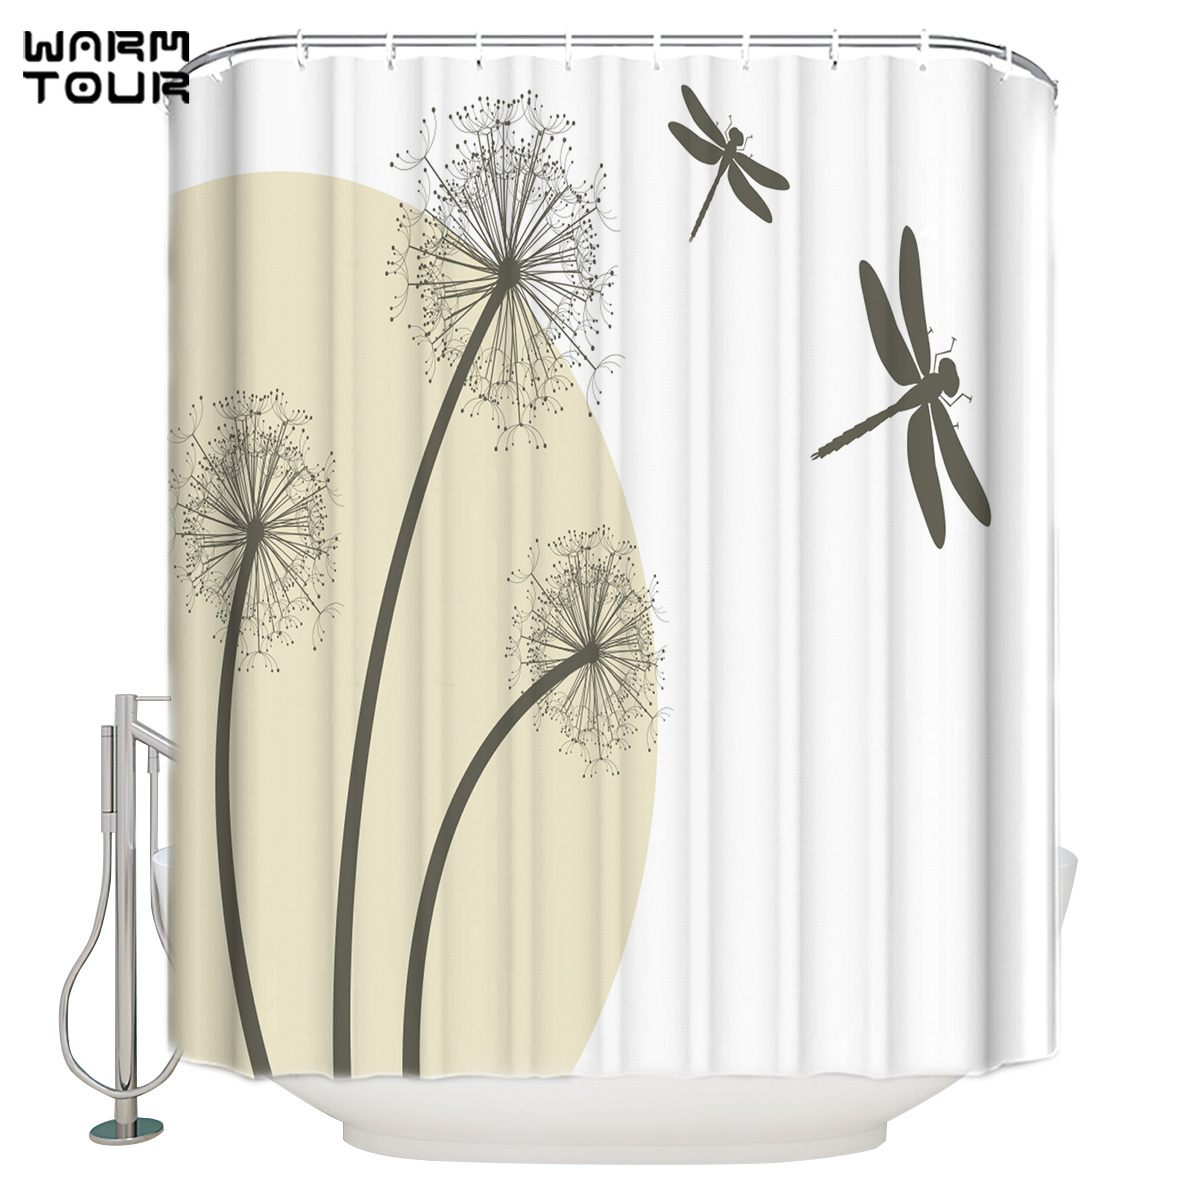 warmtour shower curtain dandelion dragonfly extra long fabric bath shower curtains mildew resistant bathroom decor with hooks shower curtains aliexpress